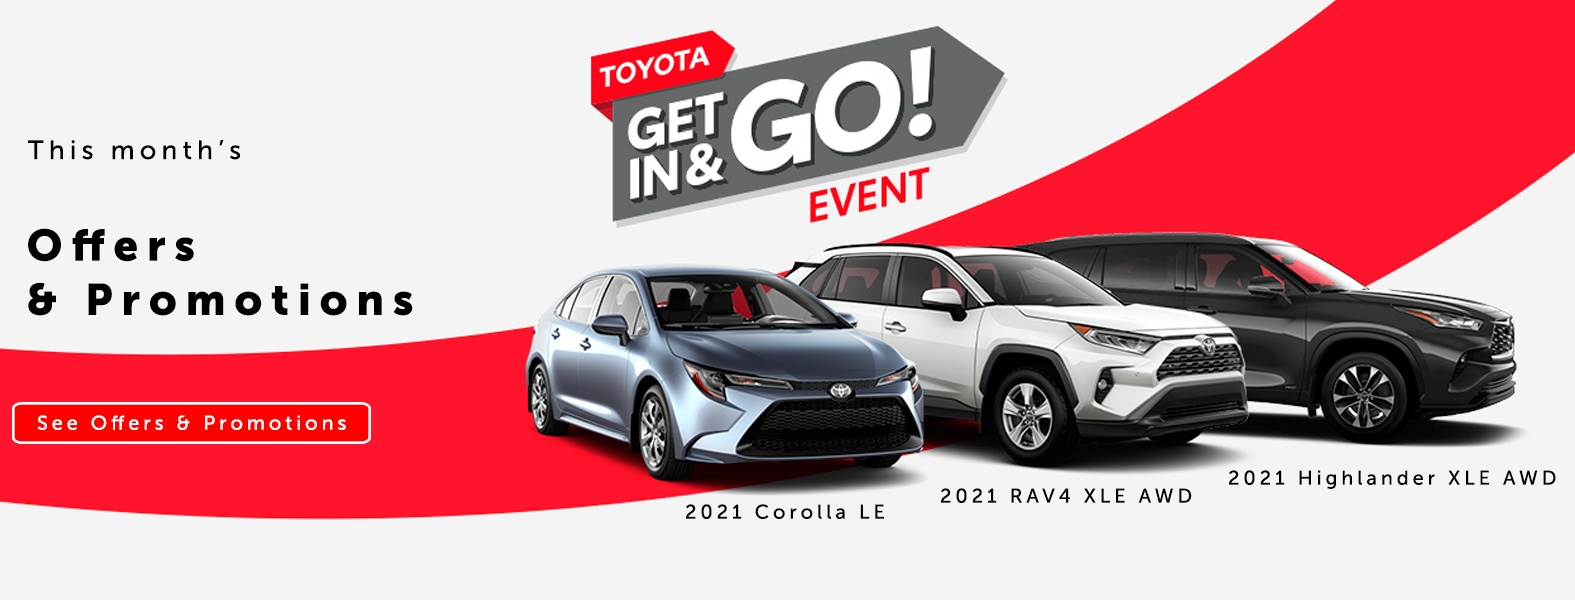 Toyota-Get-in-&-go-event